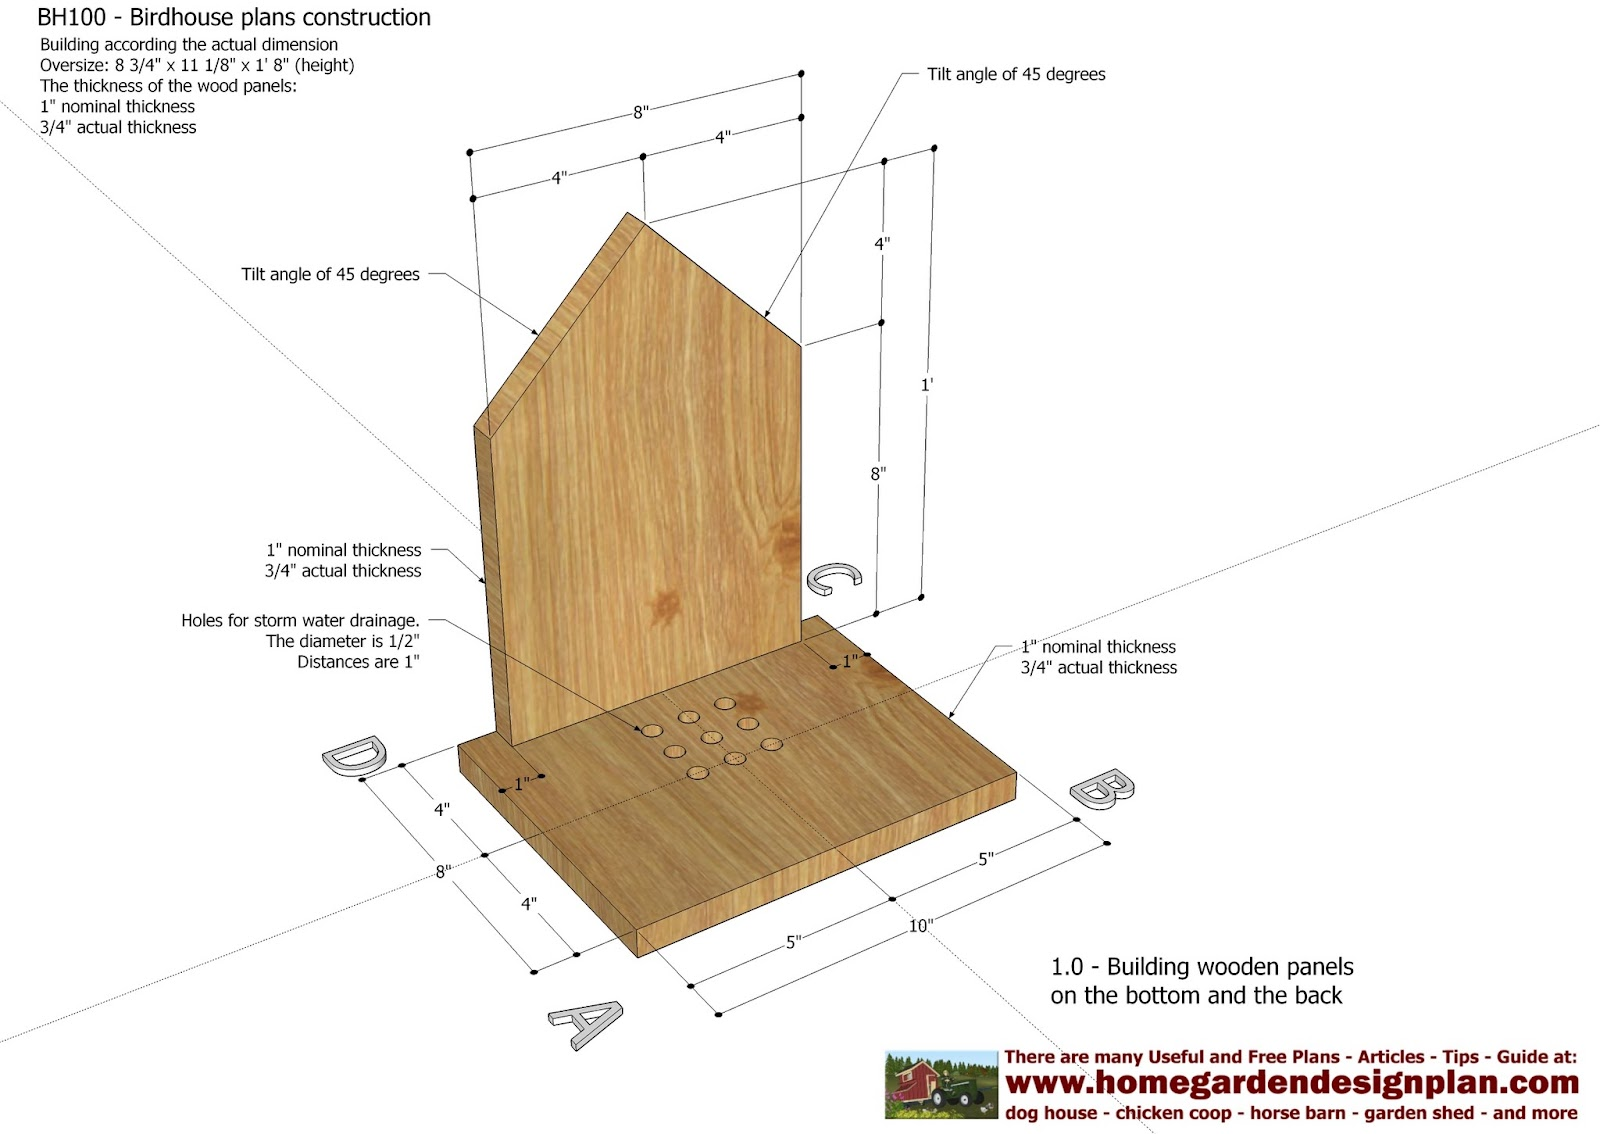 Home garden plans bh100 bird house plans construction for Home construction plans